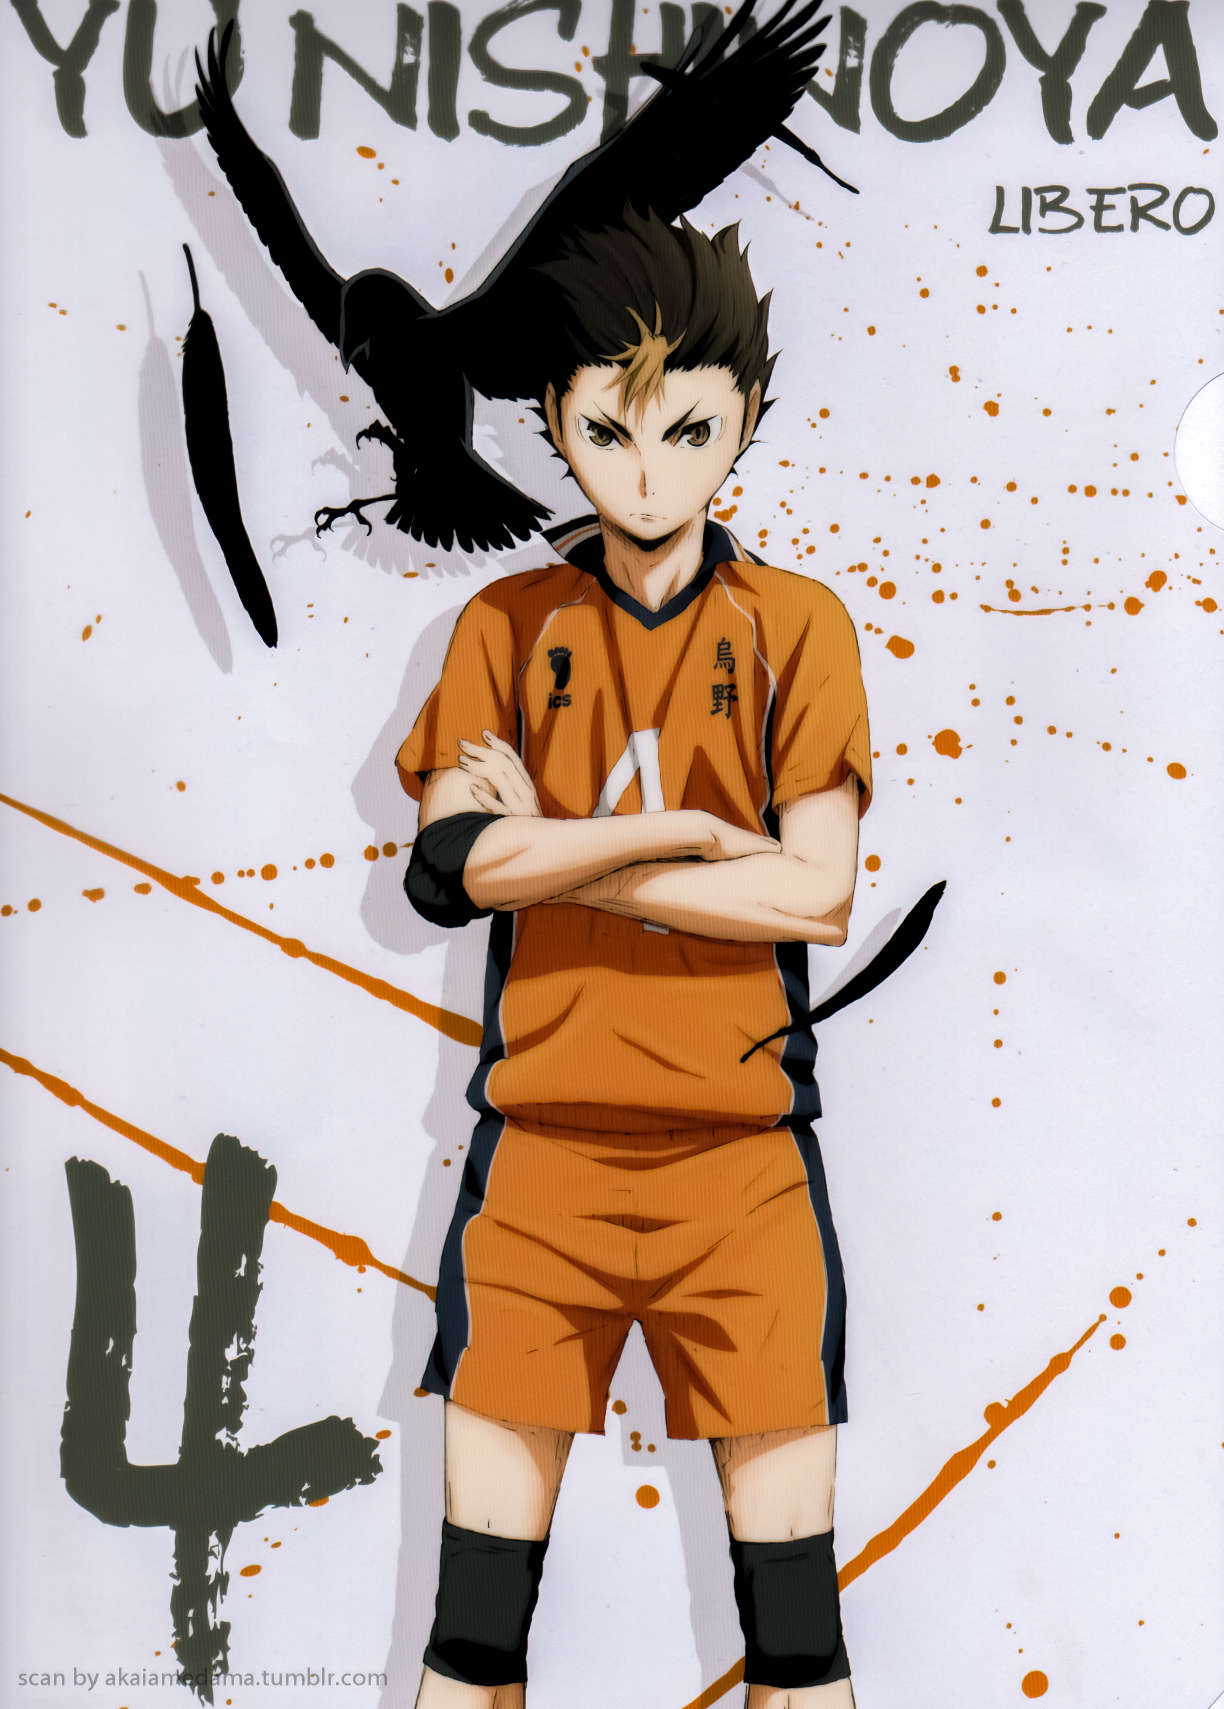 Yū Nishinoya | Haikyuu!! Wiki | FANDOM powered by Wikia